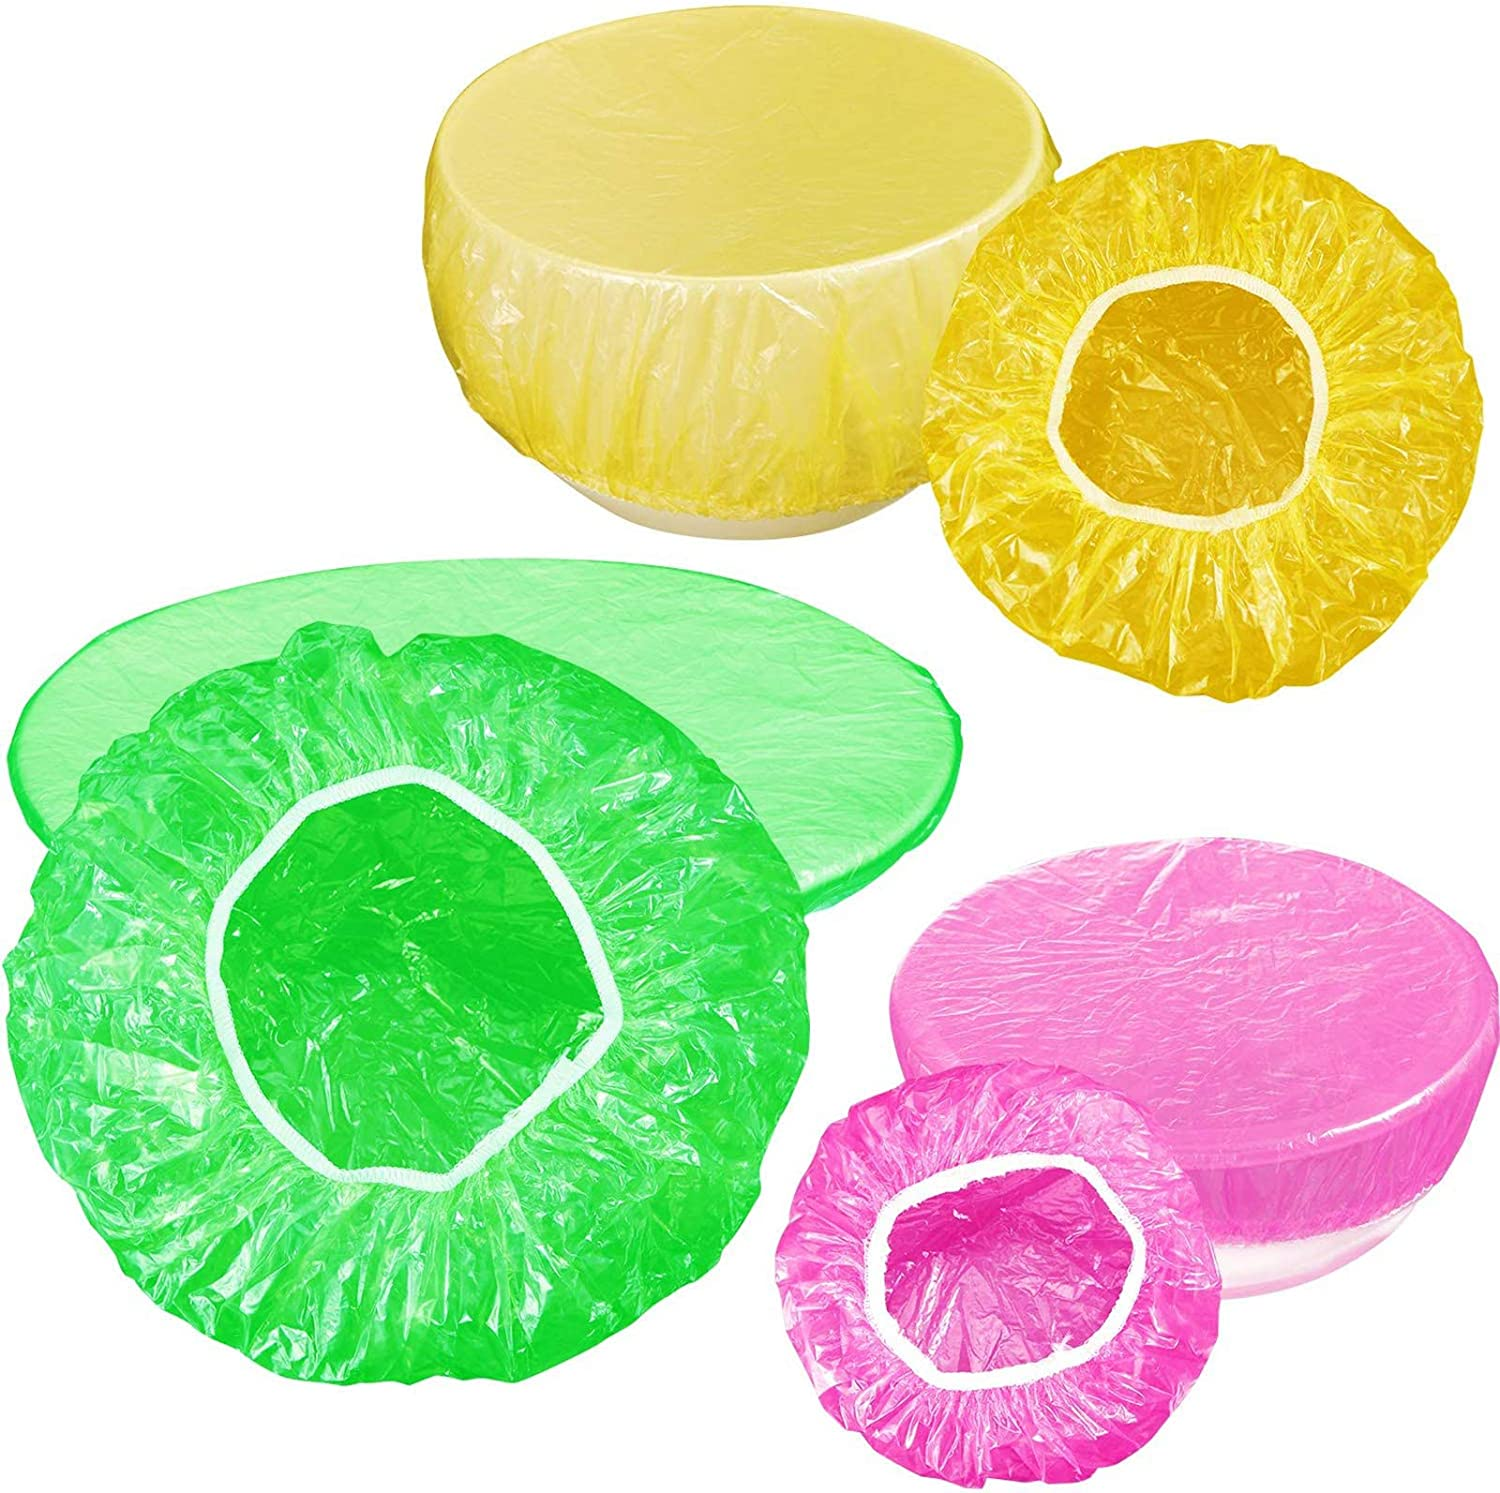 DIPNANG 60 Pieces Food Storage Covers for Dishes 3 Size Colorful Plastic Elastic Bowl Cover with Elastic Edging Stretchable Disposable Food Storage Wrap For Plates, Leftovers, Picnic Outdoor Food